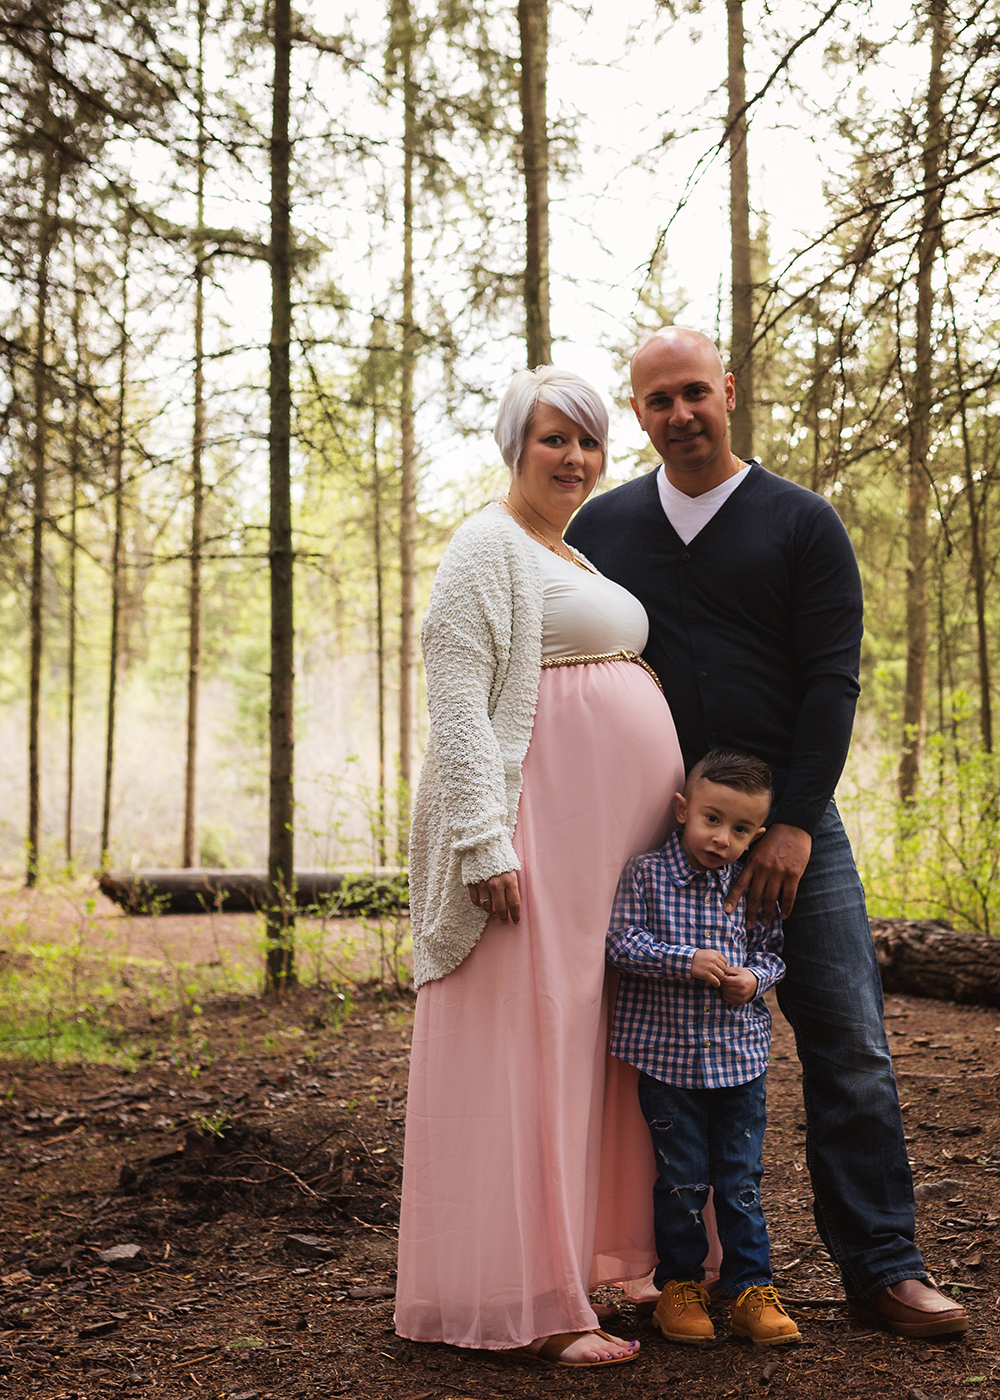 Edmonton Maternity Photographer_Chelsea Sneak Peek 3.jpg